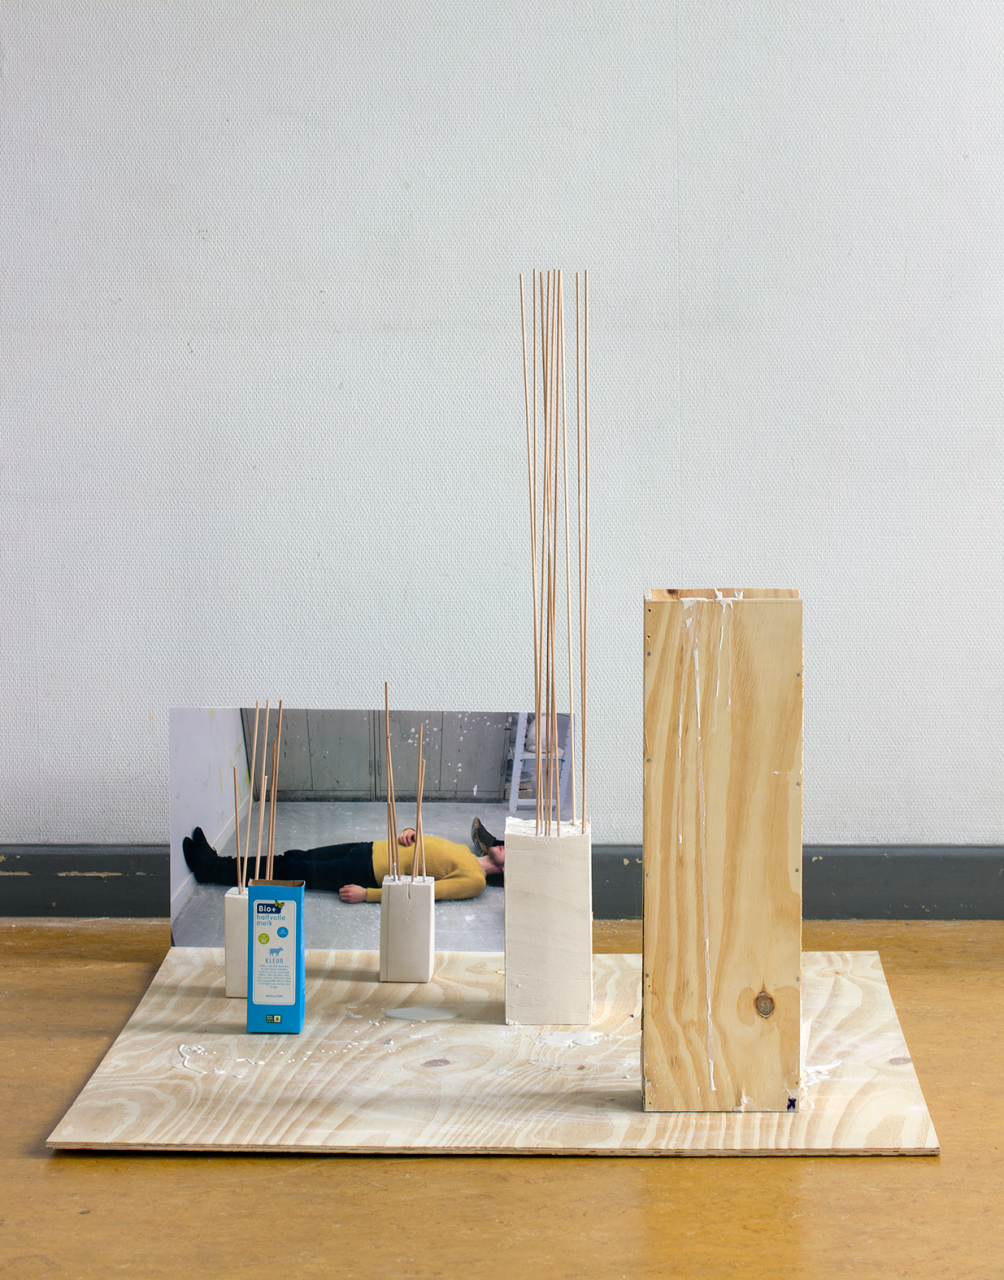 Site construction 2018 - 62 x 130 x 103cm, photograph, foamcore, triplex, plaster, rods, milk carton